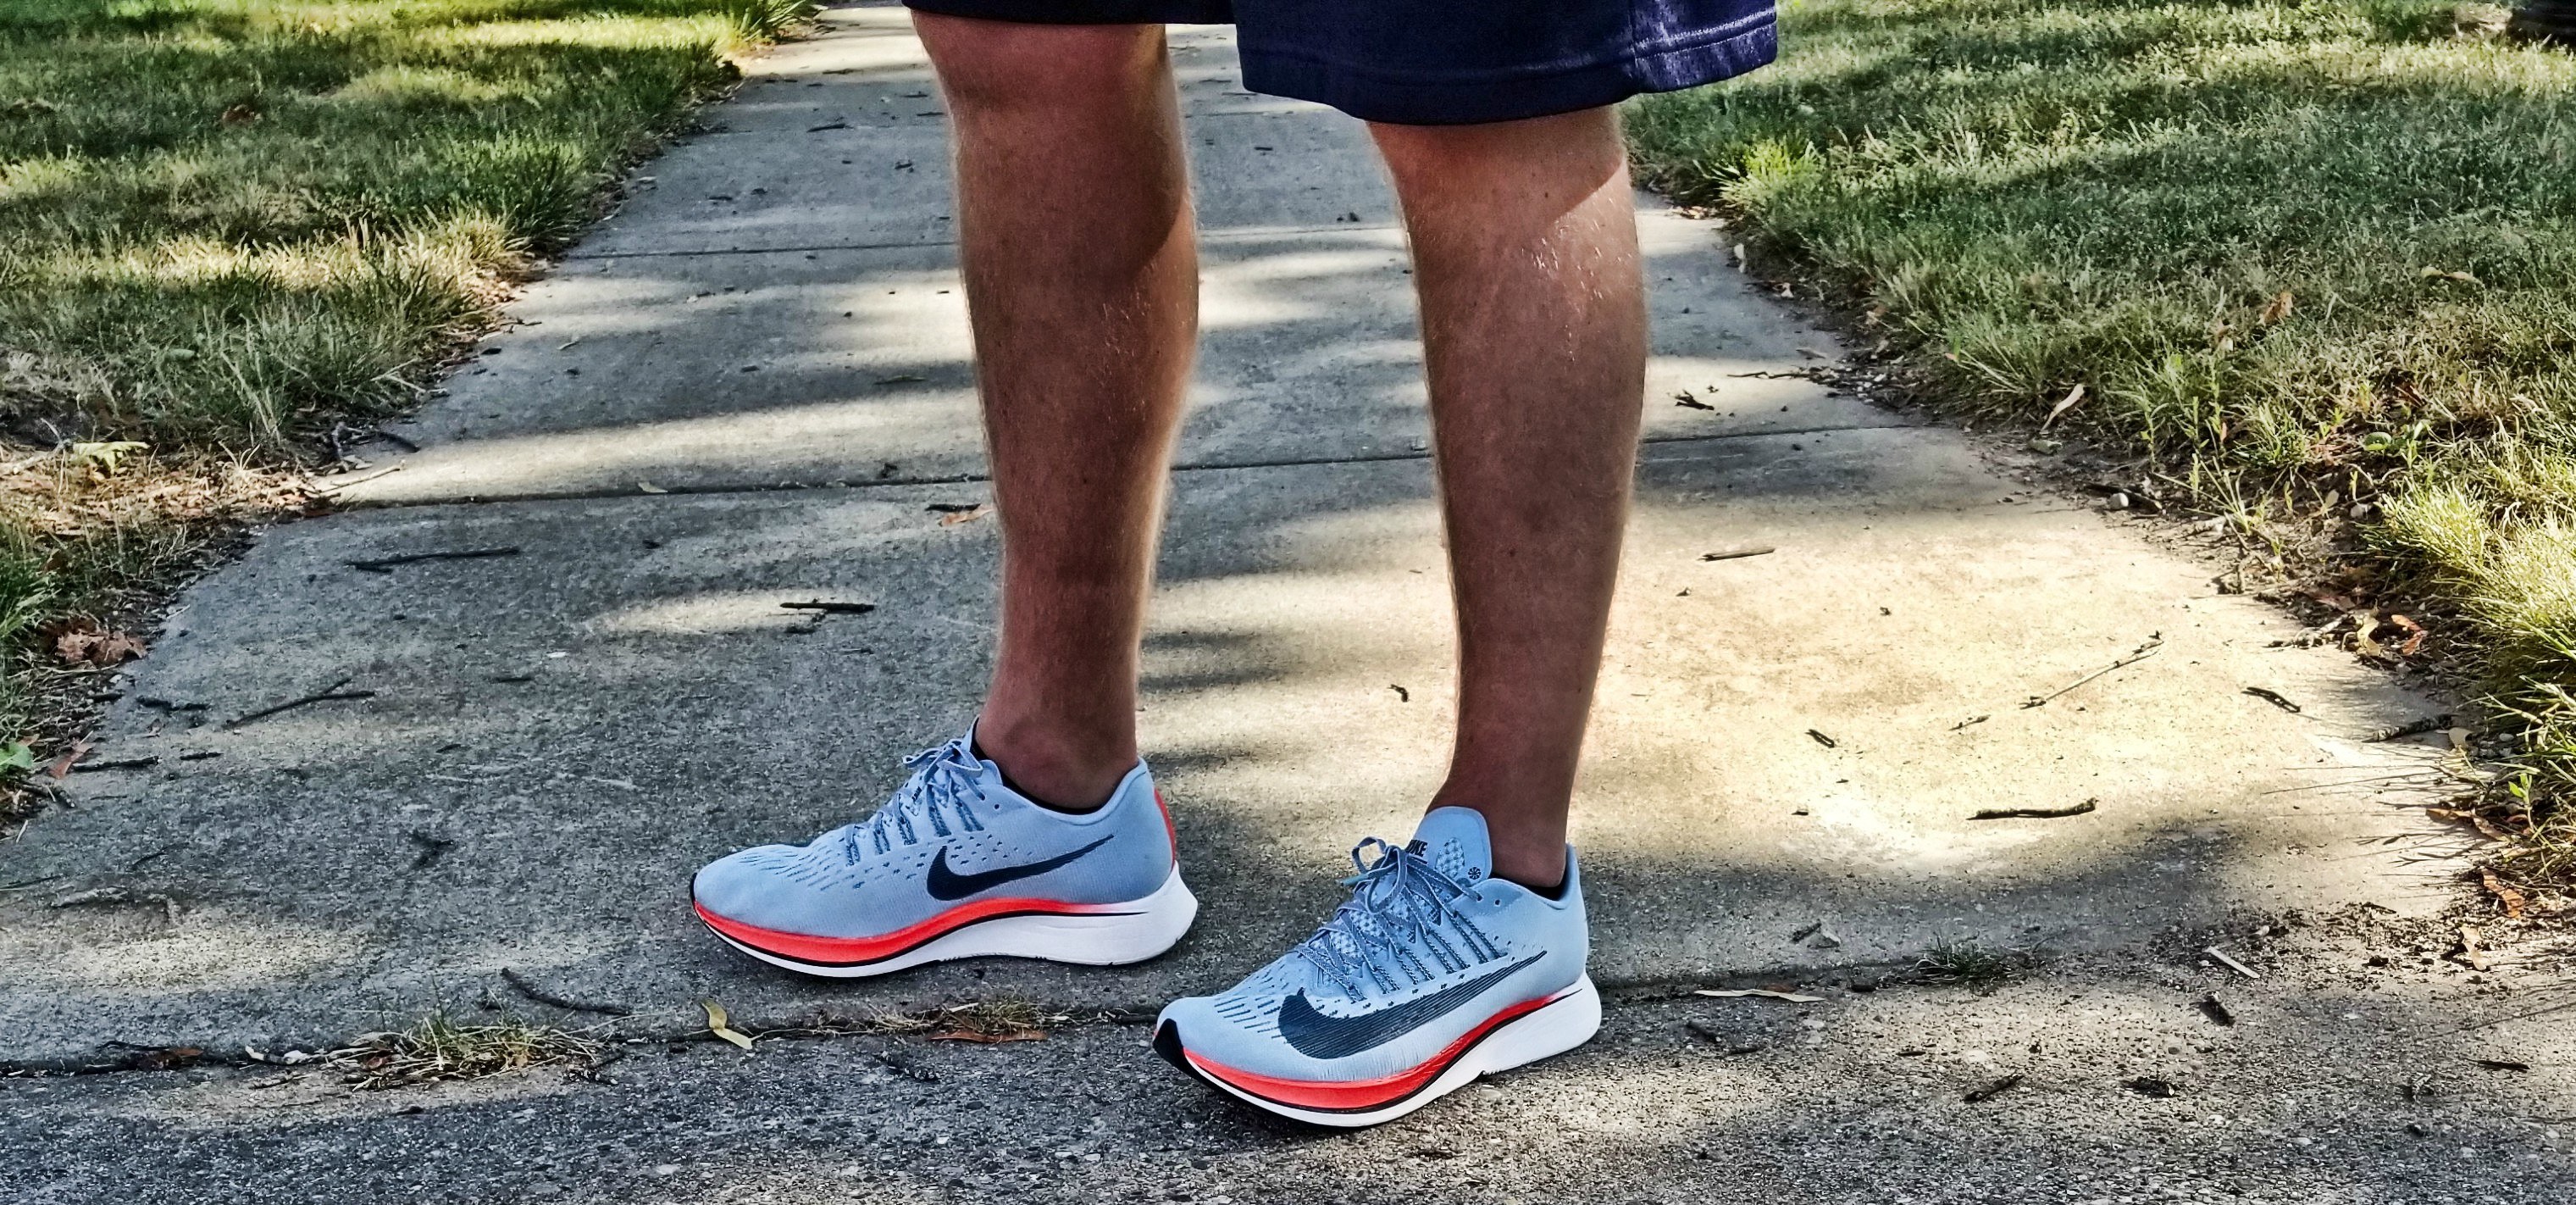 80bf205d5469 Nike Zoom Fly - Fitness Review